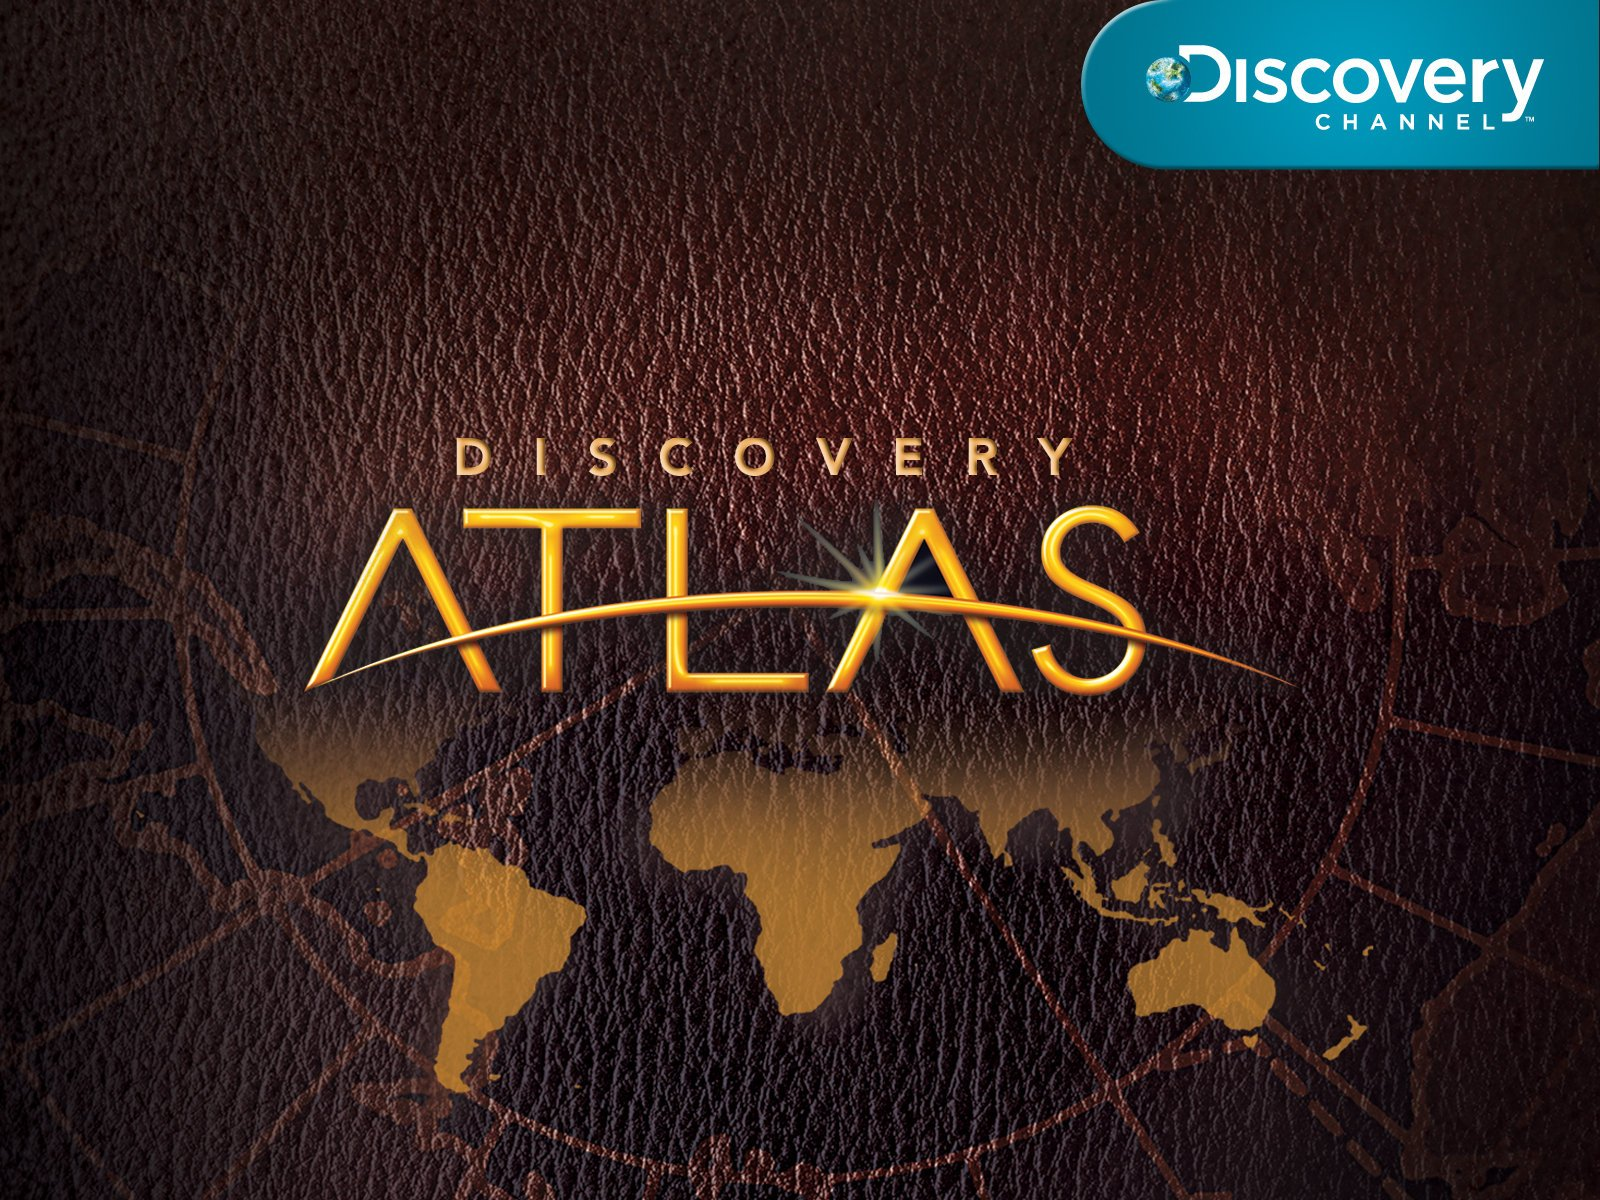 Discovery atlas japan revealed online dating